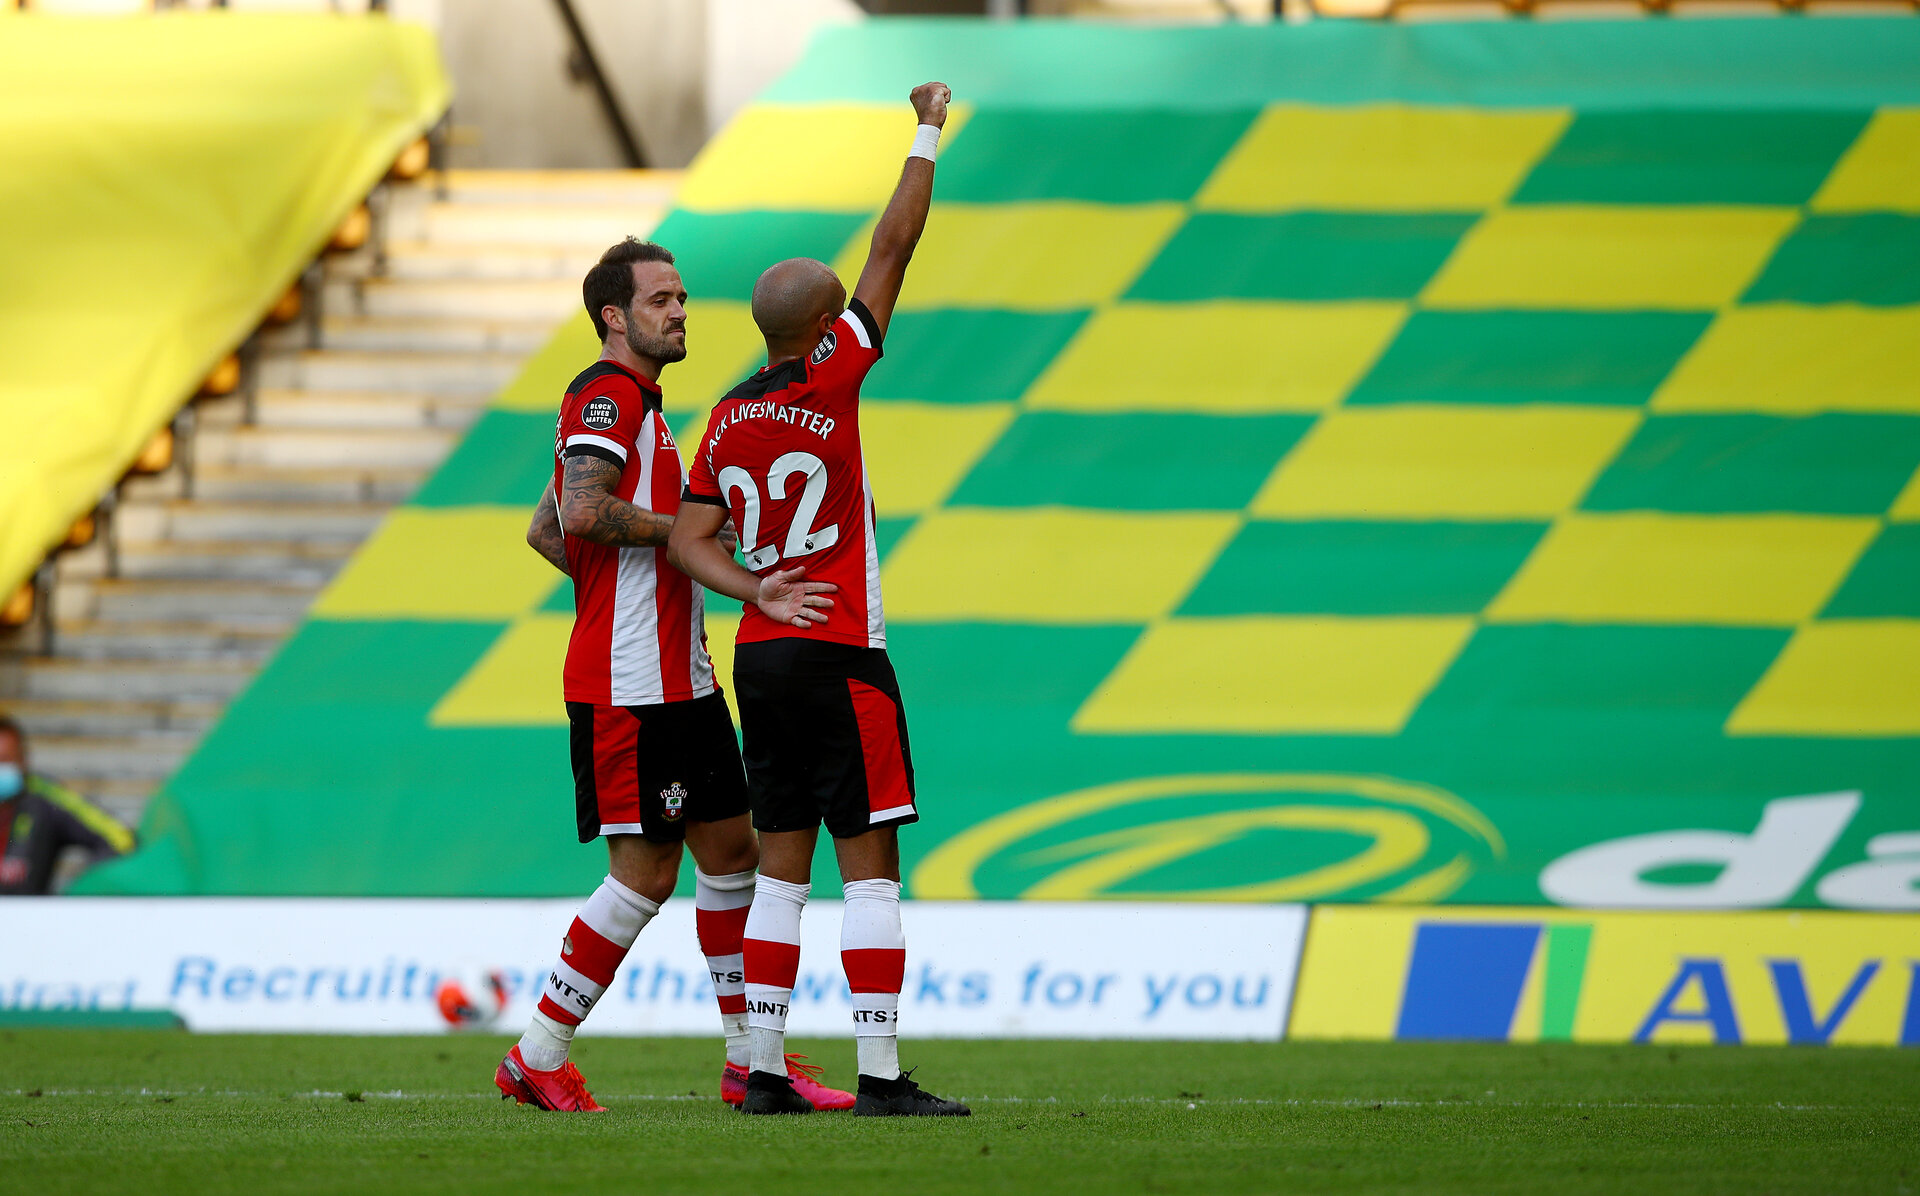 NORWICH, ENGLAND - JUNE 19: Nathan Redmond(R) of Southampton celebrates his goal with Danny Ings(L) during the Premier League match between Norwich City and Southampton FC at Carrow Road on June 19, 2020 in Norwich, United Kingdom. (Photo by Matt Watson/Southampton FC via Getty Images)